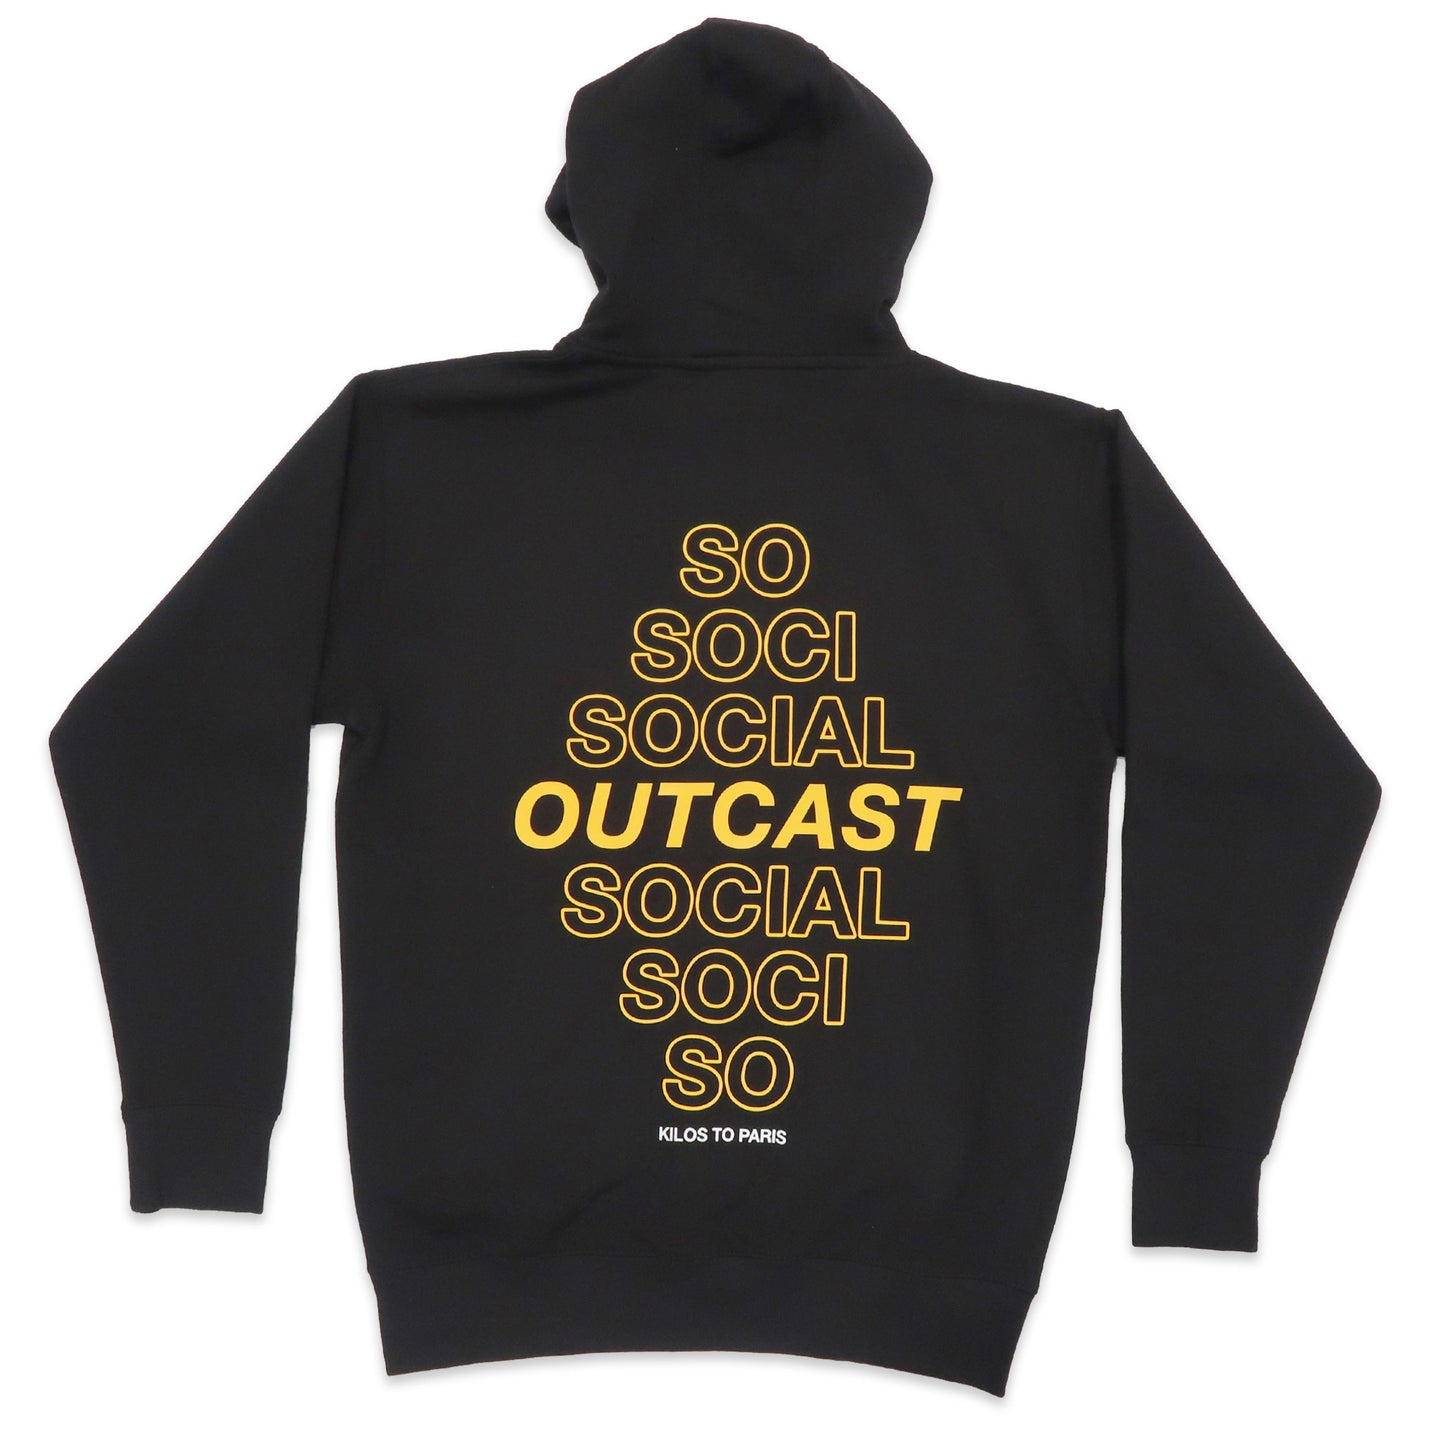 Social Outcast Hoodie in Black and Yellow